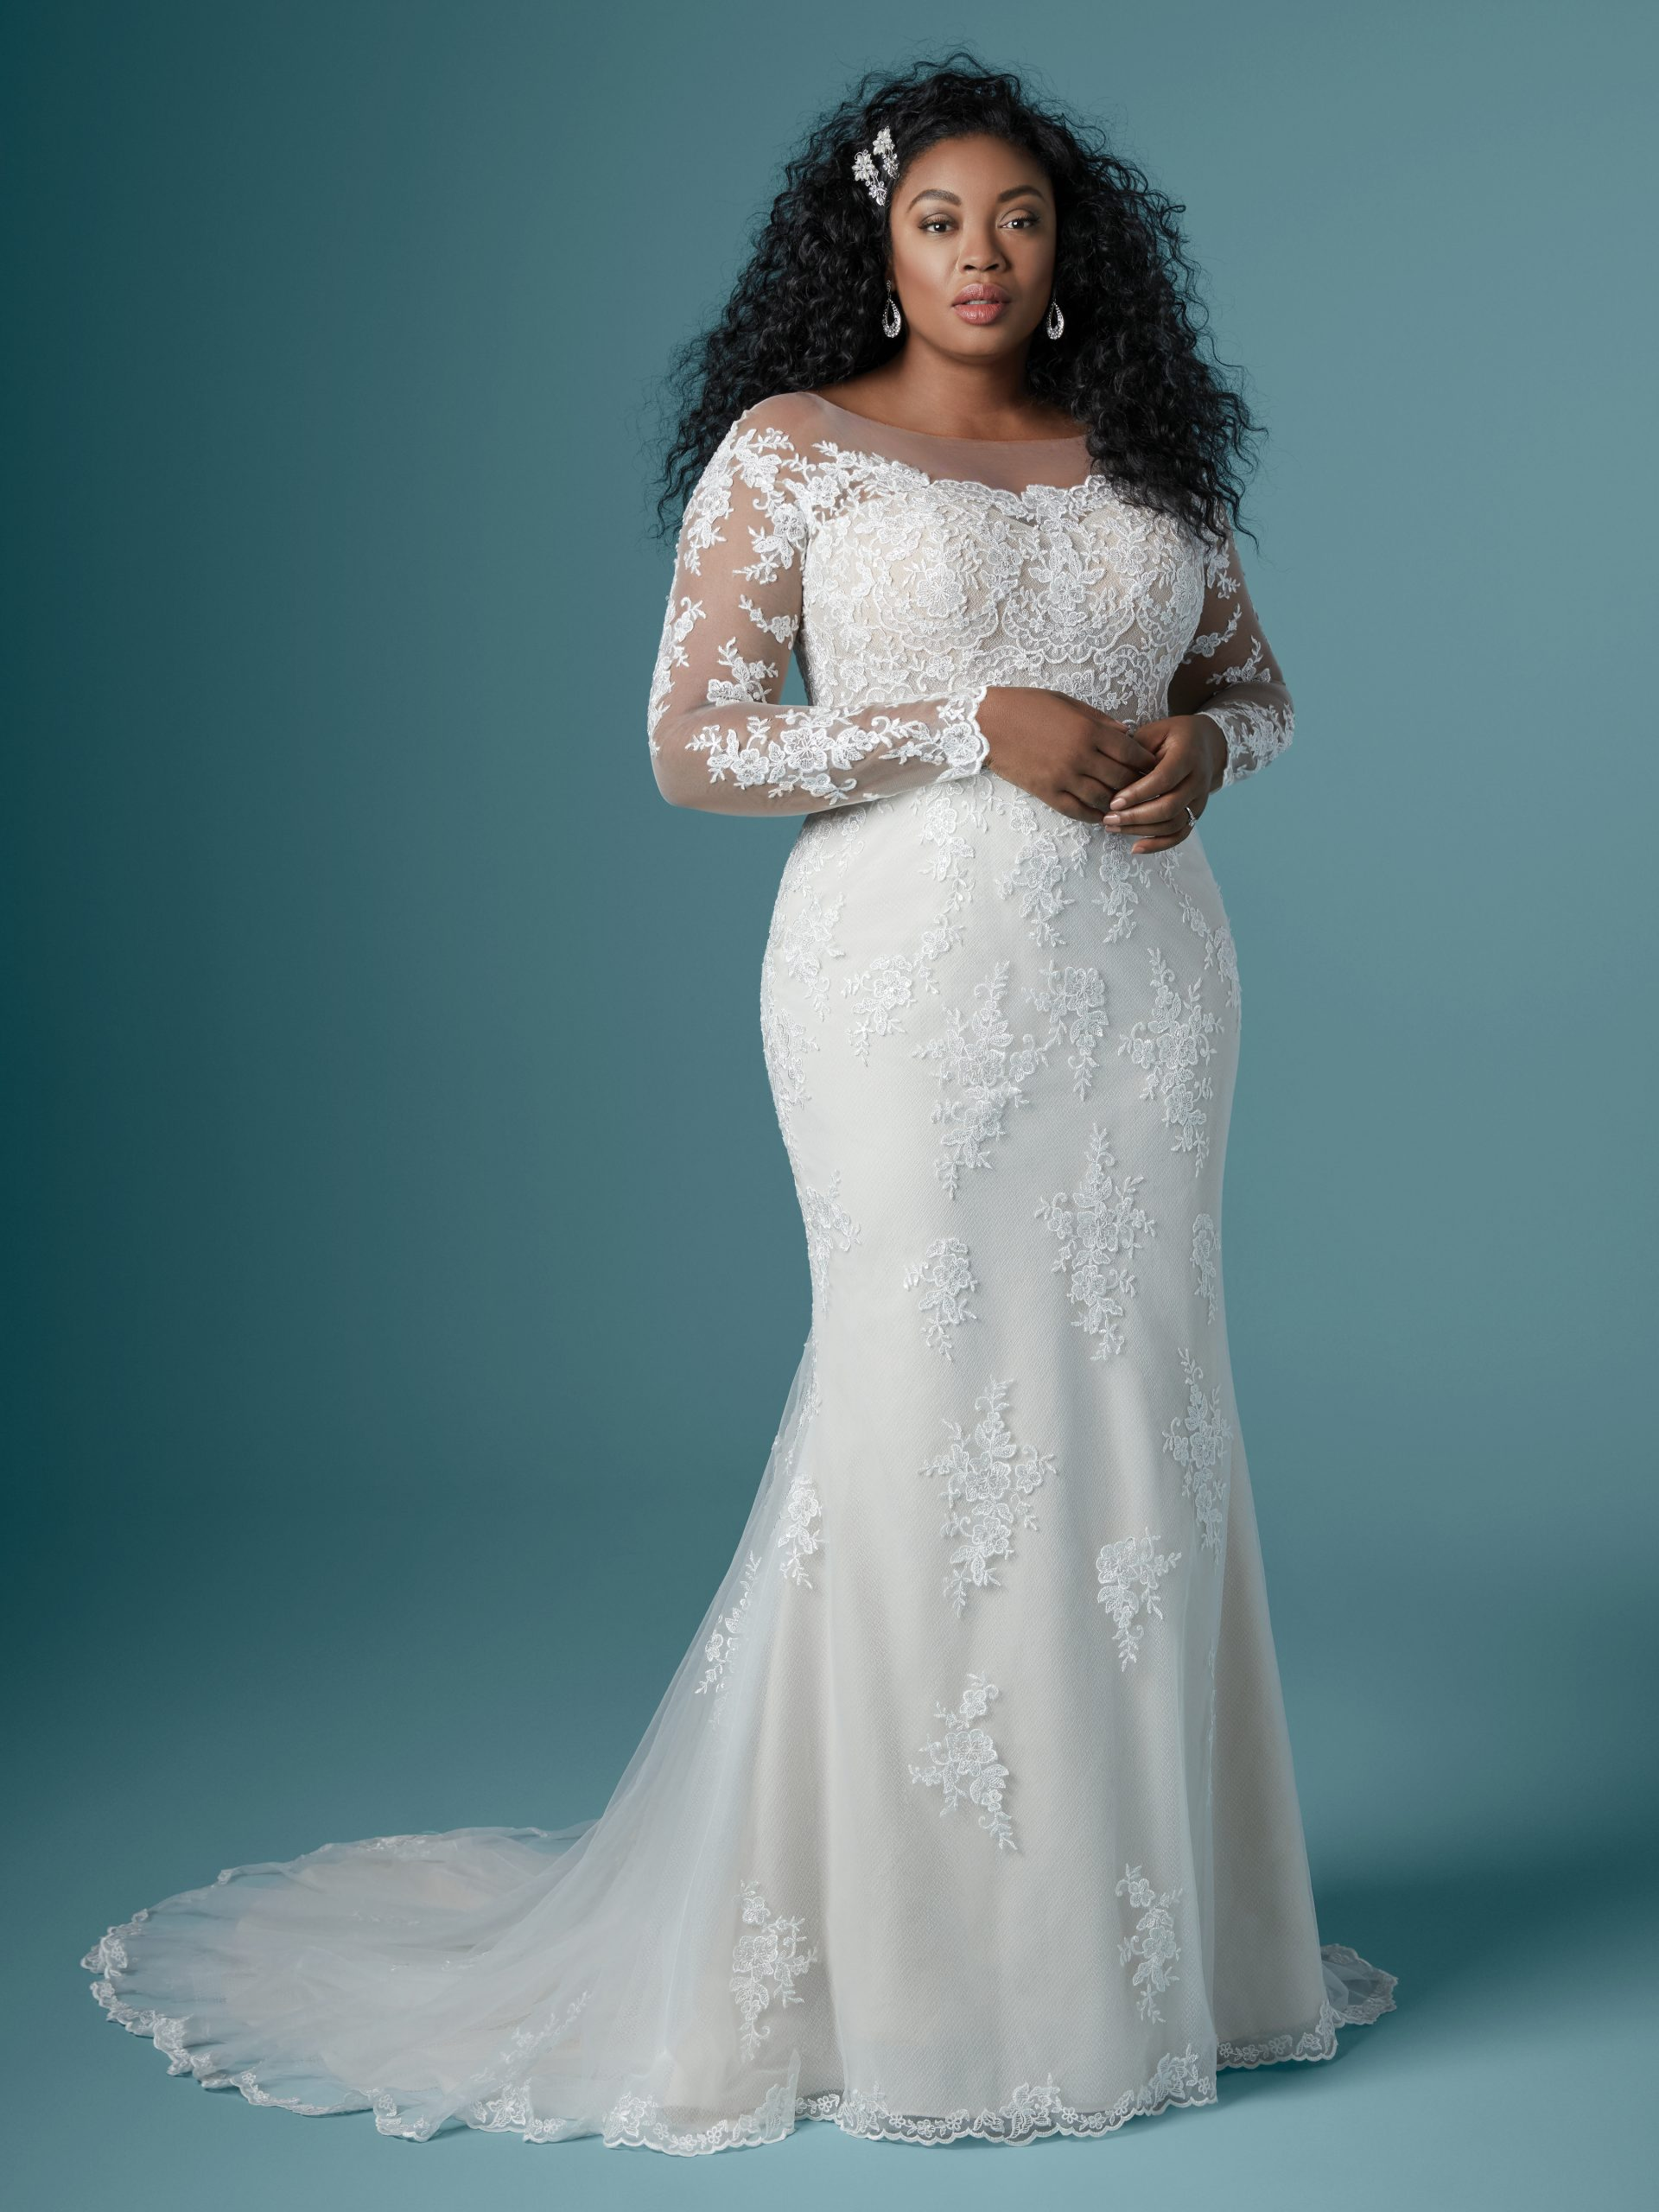 Off the Shoulder Lace Wedding Gown Called Chevelle Lynette by Maggie Sottero